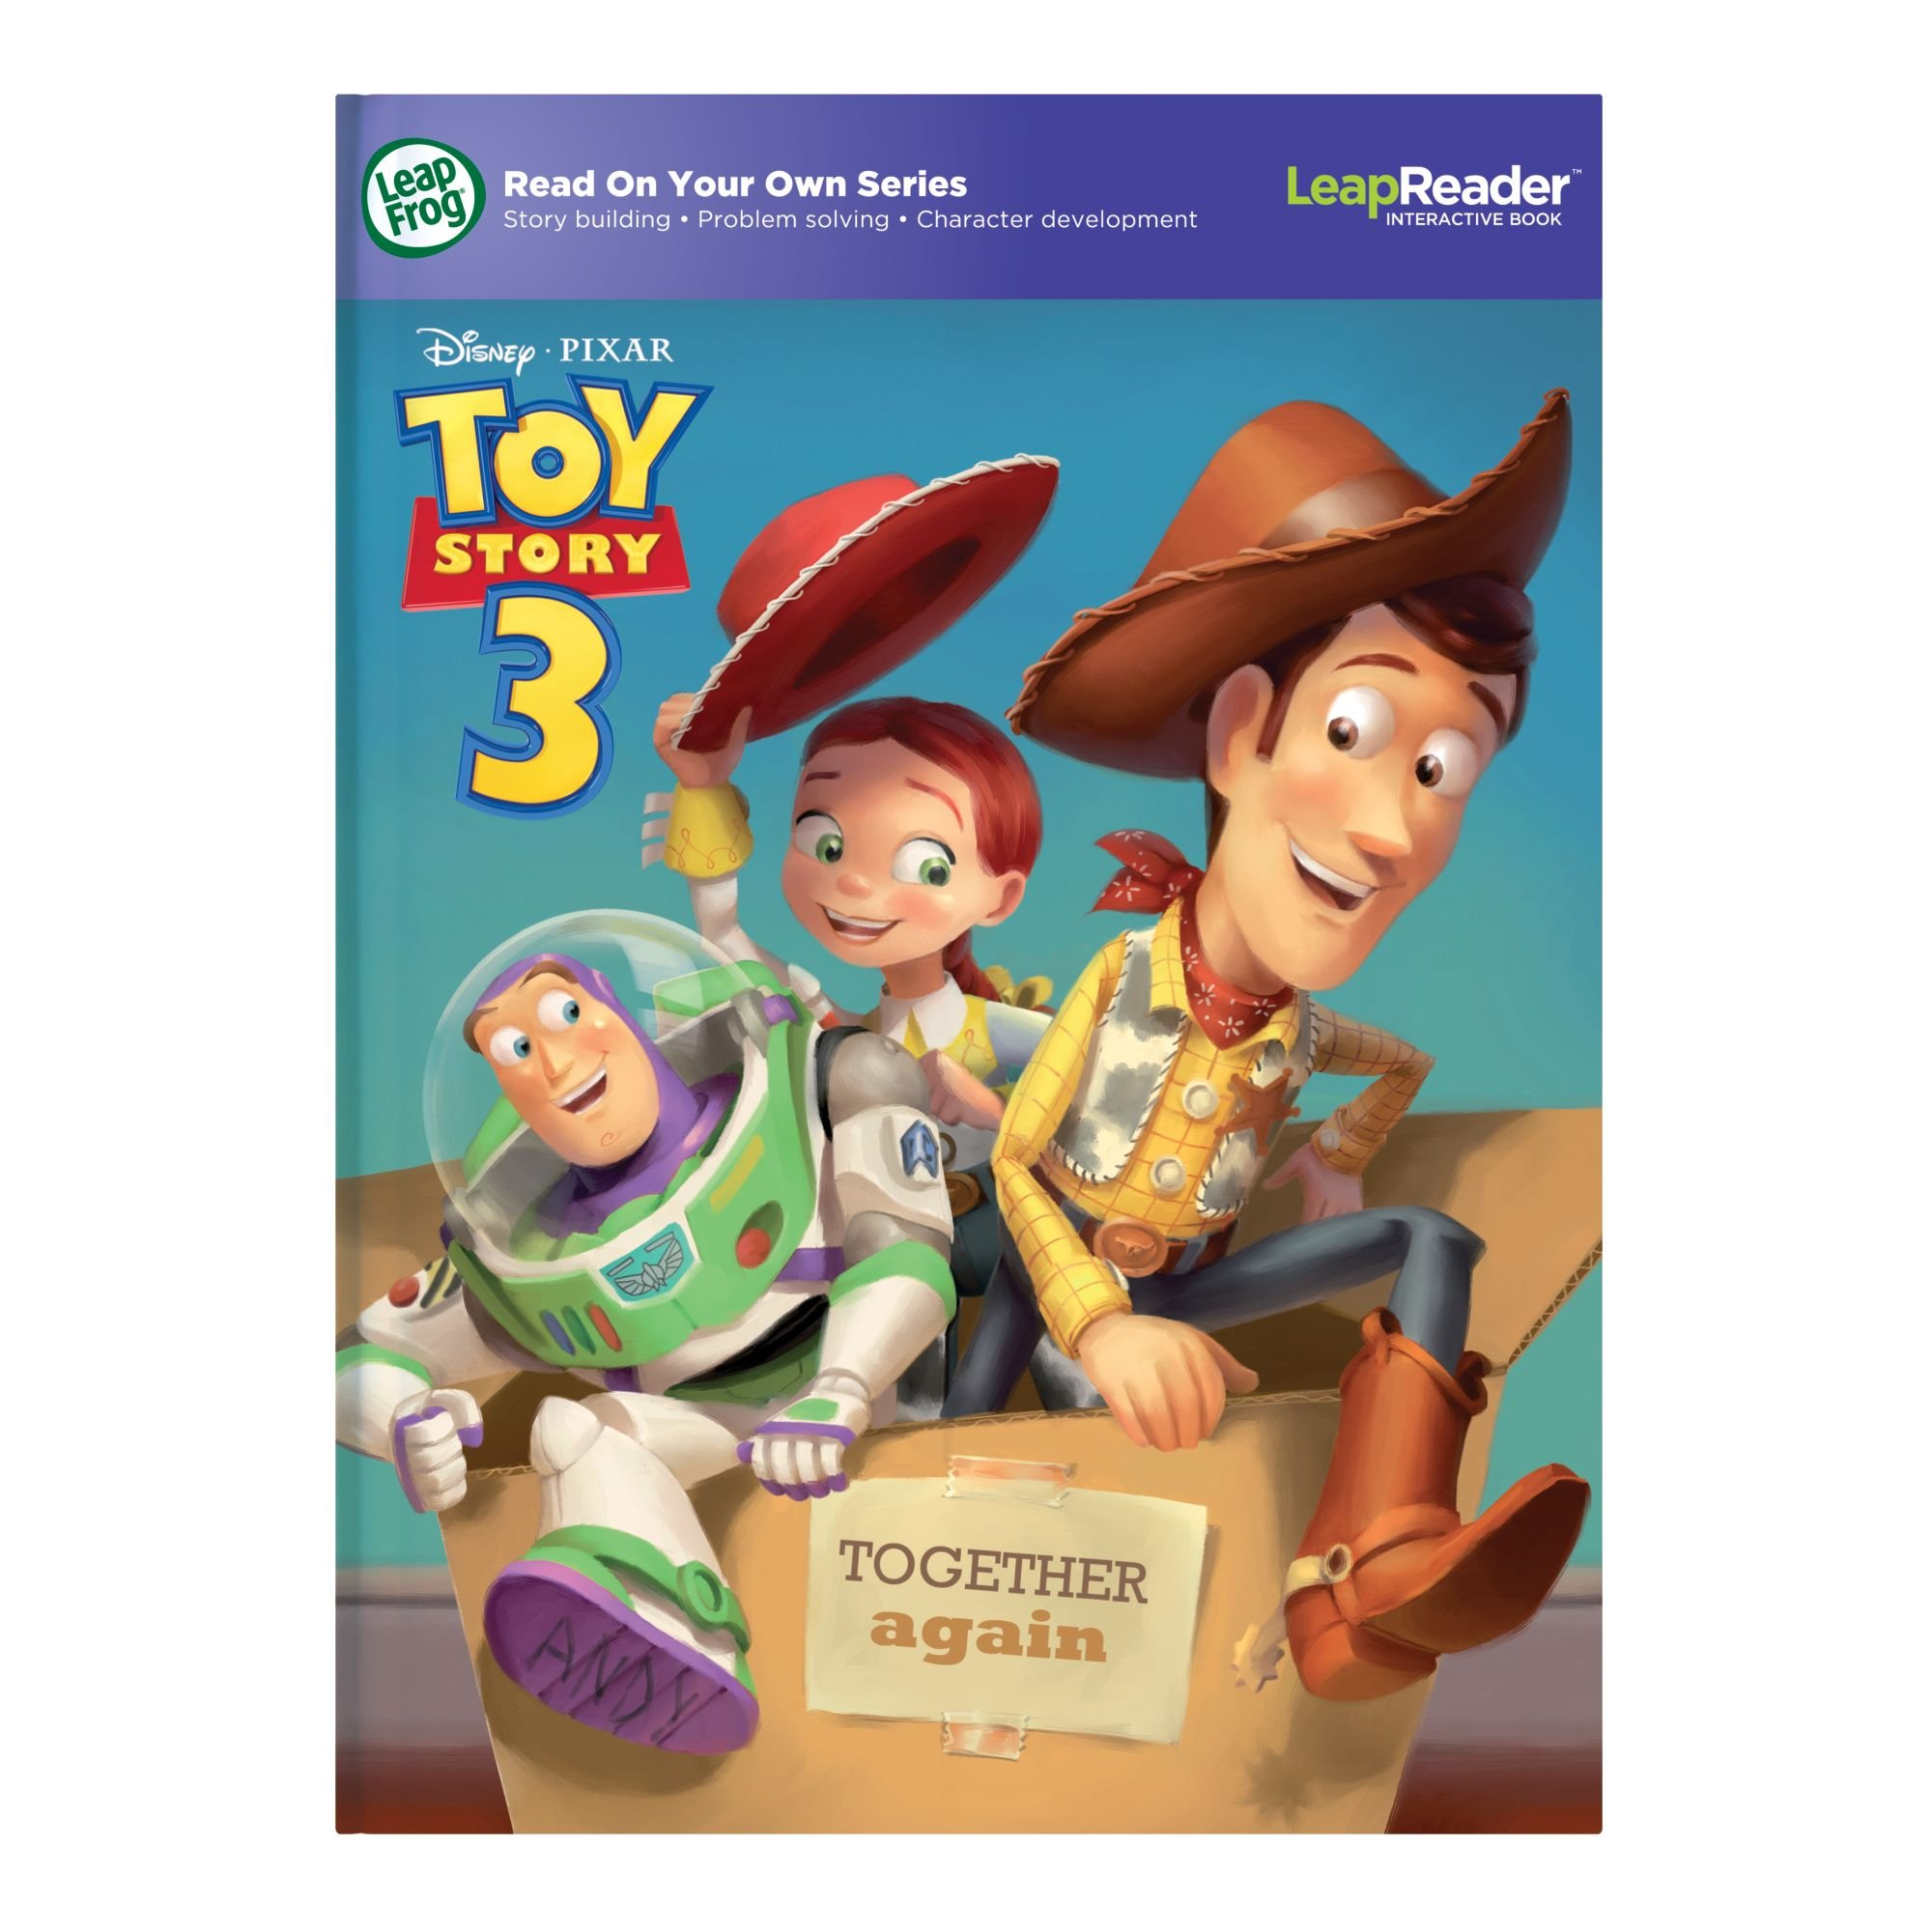 LeapFrog LeapReader Book: Disney Pixar Toy Story 3: Together Again (works with Tag) Packaging May Vary by LeapFrog (Image #7)